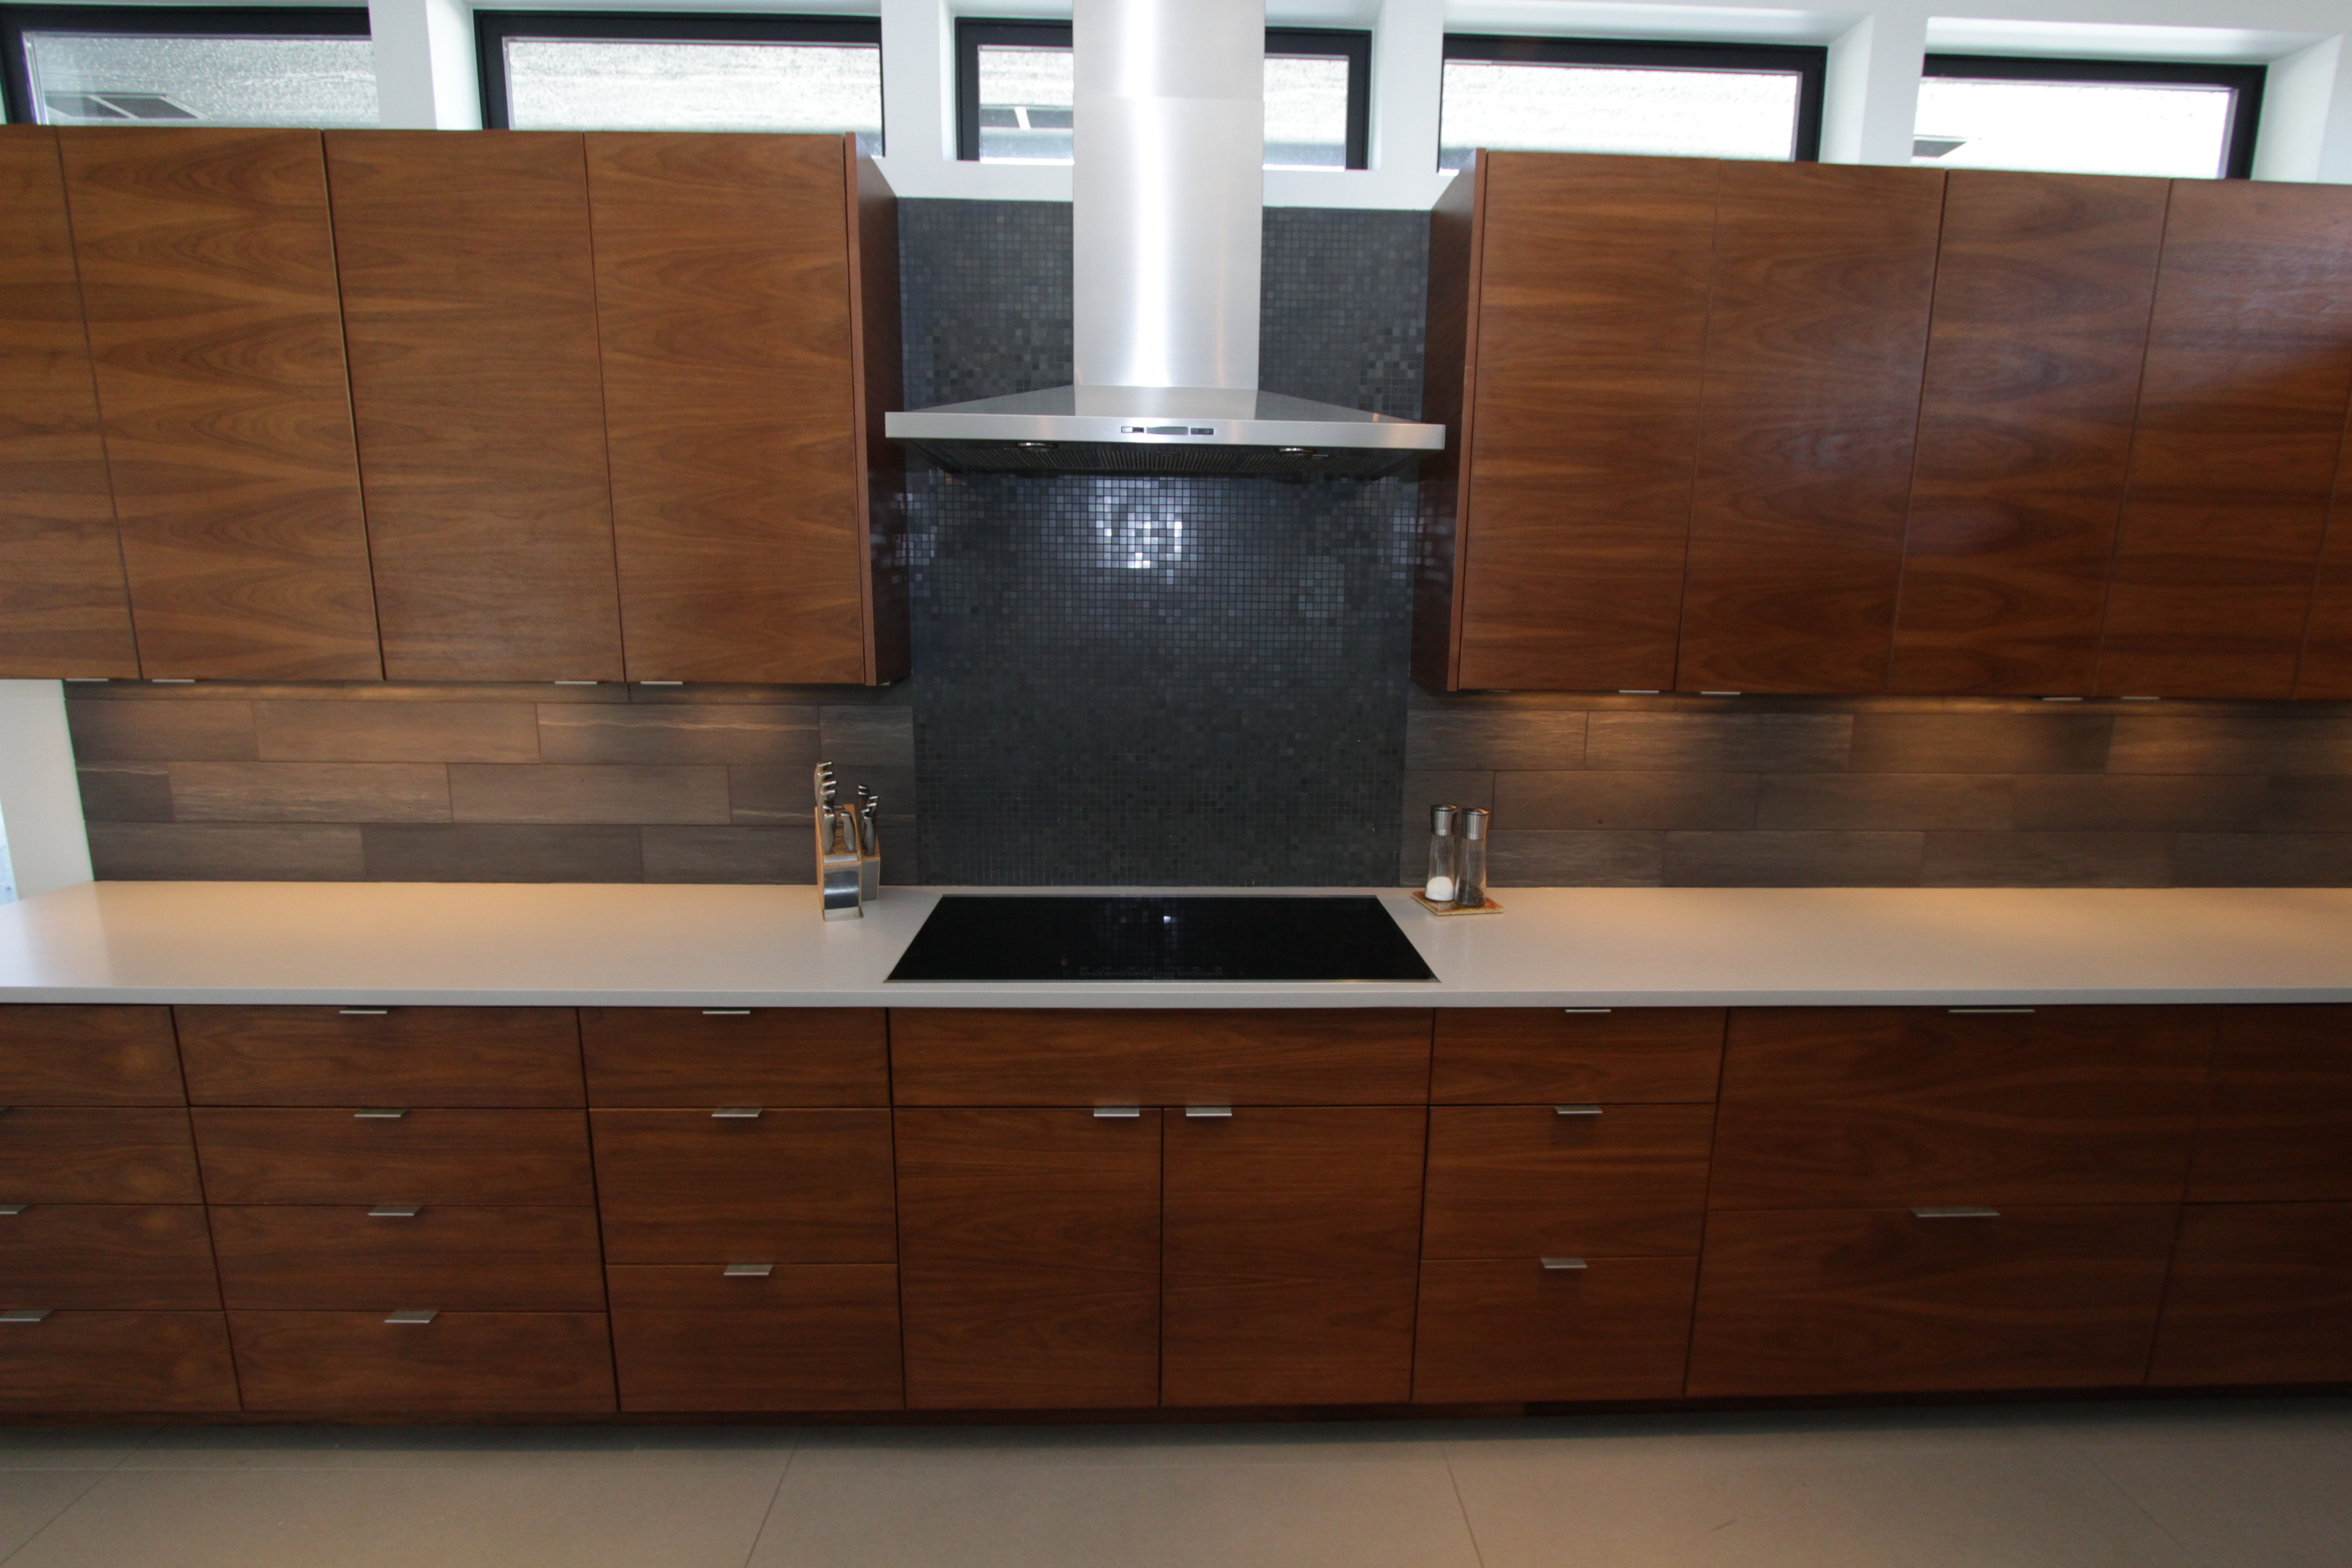 Thumb Kitchen Contemporary Style Walnut Medium Color Banded Door Frameless Construction Chimney Hood Bank Of Drawers